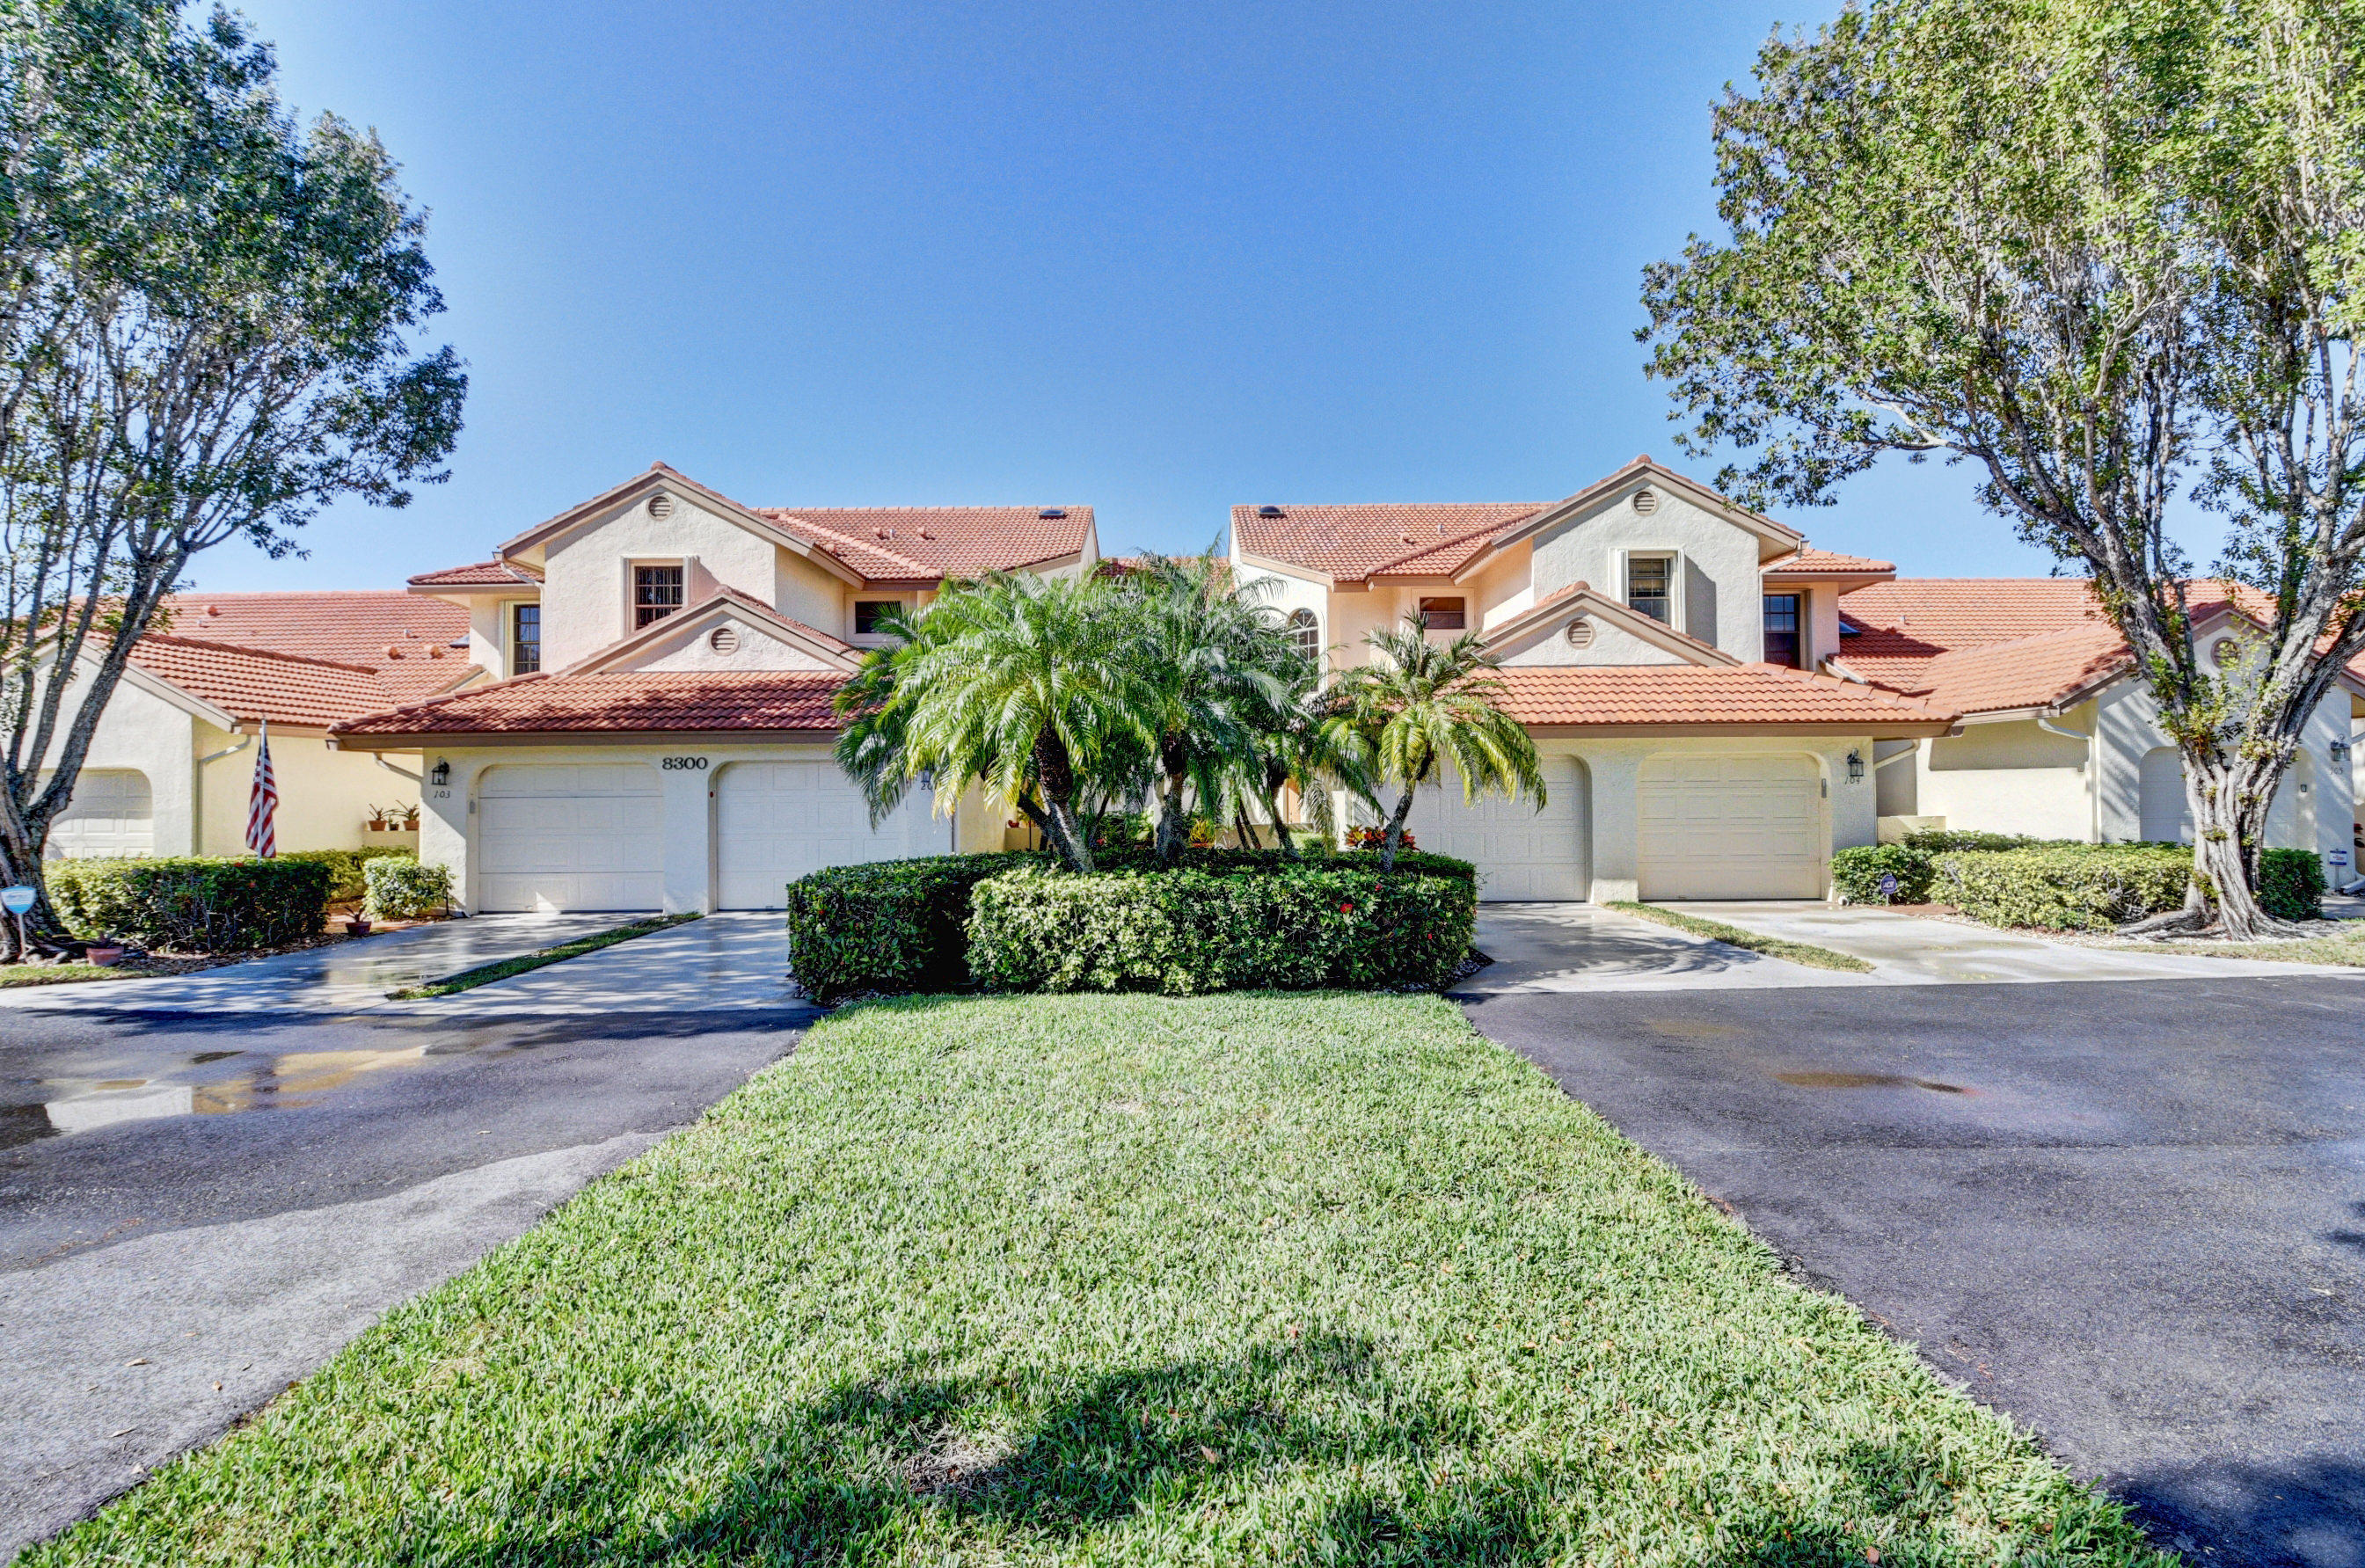 8300 Waterline Drive, Boynton Beach, FL 33472